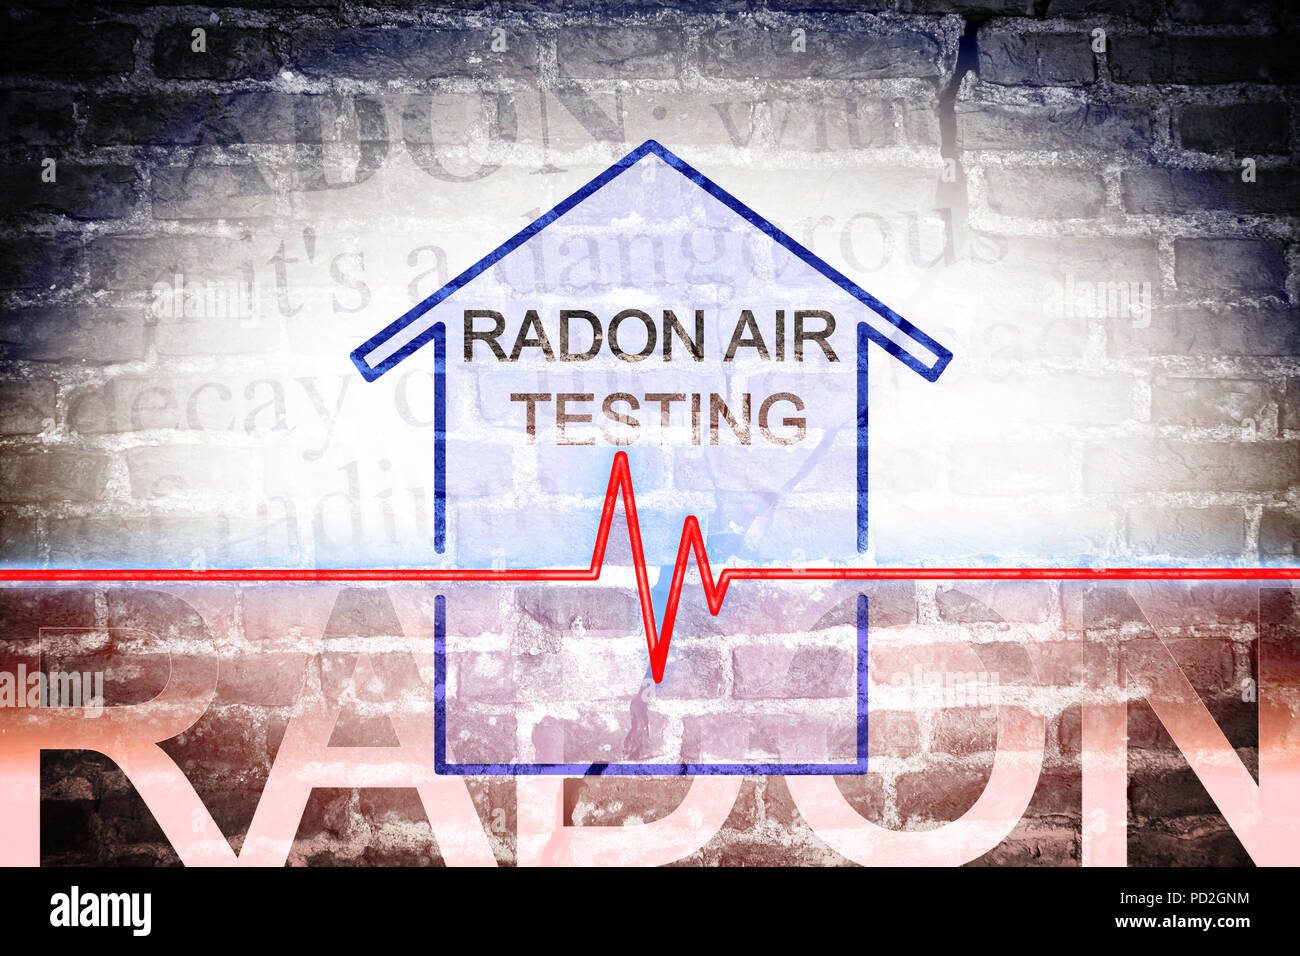 the-danger-of-radon-gas-in-our-homes-concept-image-with-check-up-chart-about-radon-level-testing-against-a-cracked-brick-wall-PD2GNM.jpg